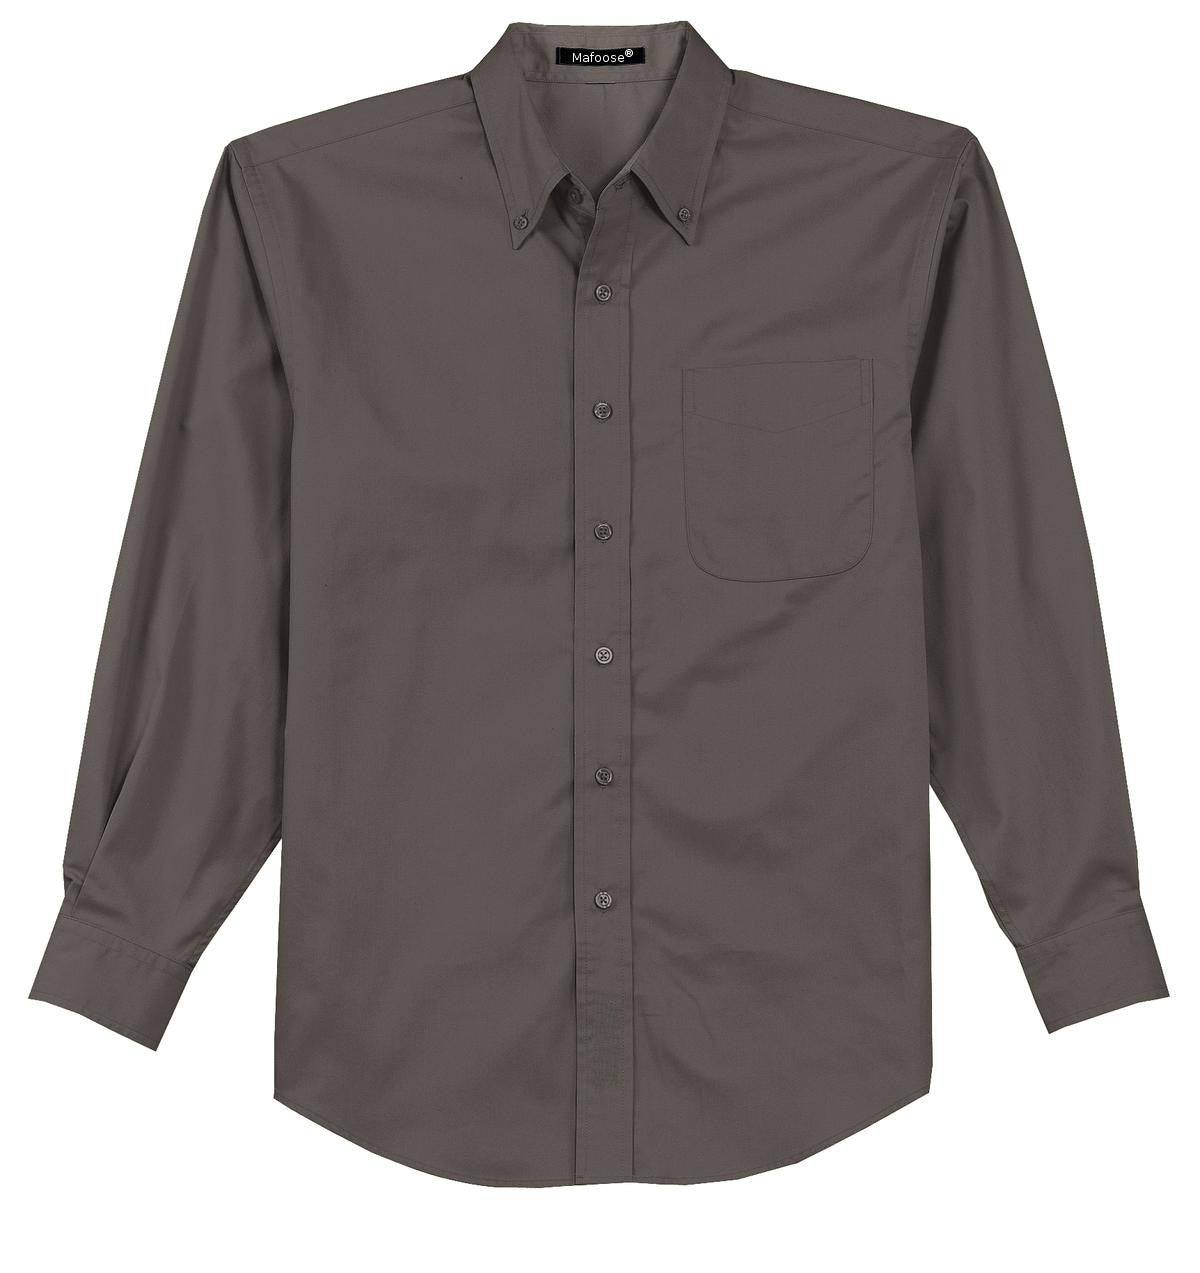 Mafoose Men's Tall Long Sleeve Easy Care Shirt Bark-Front